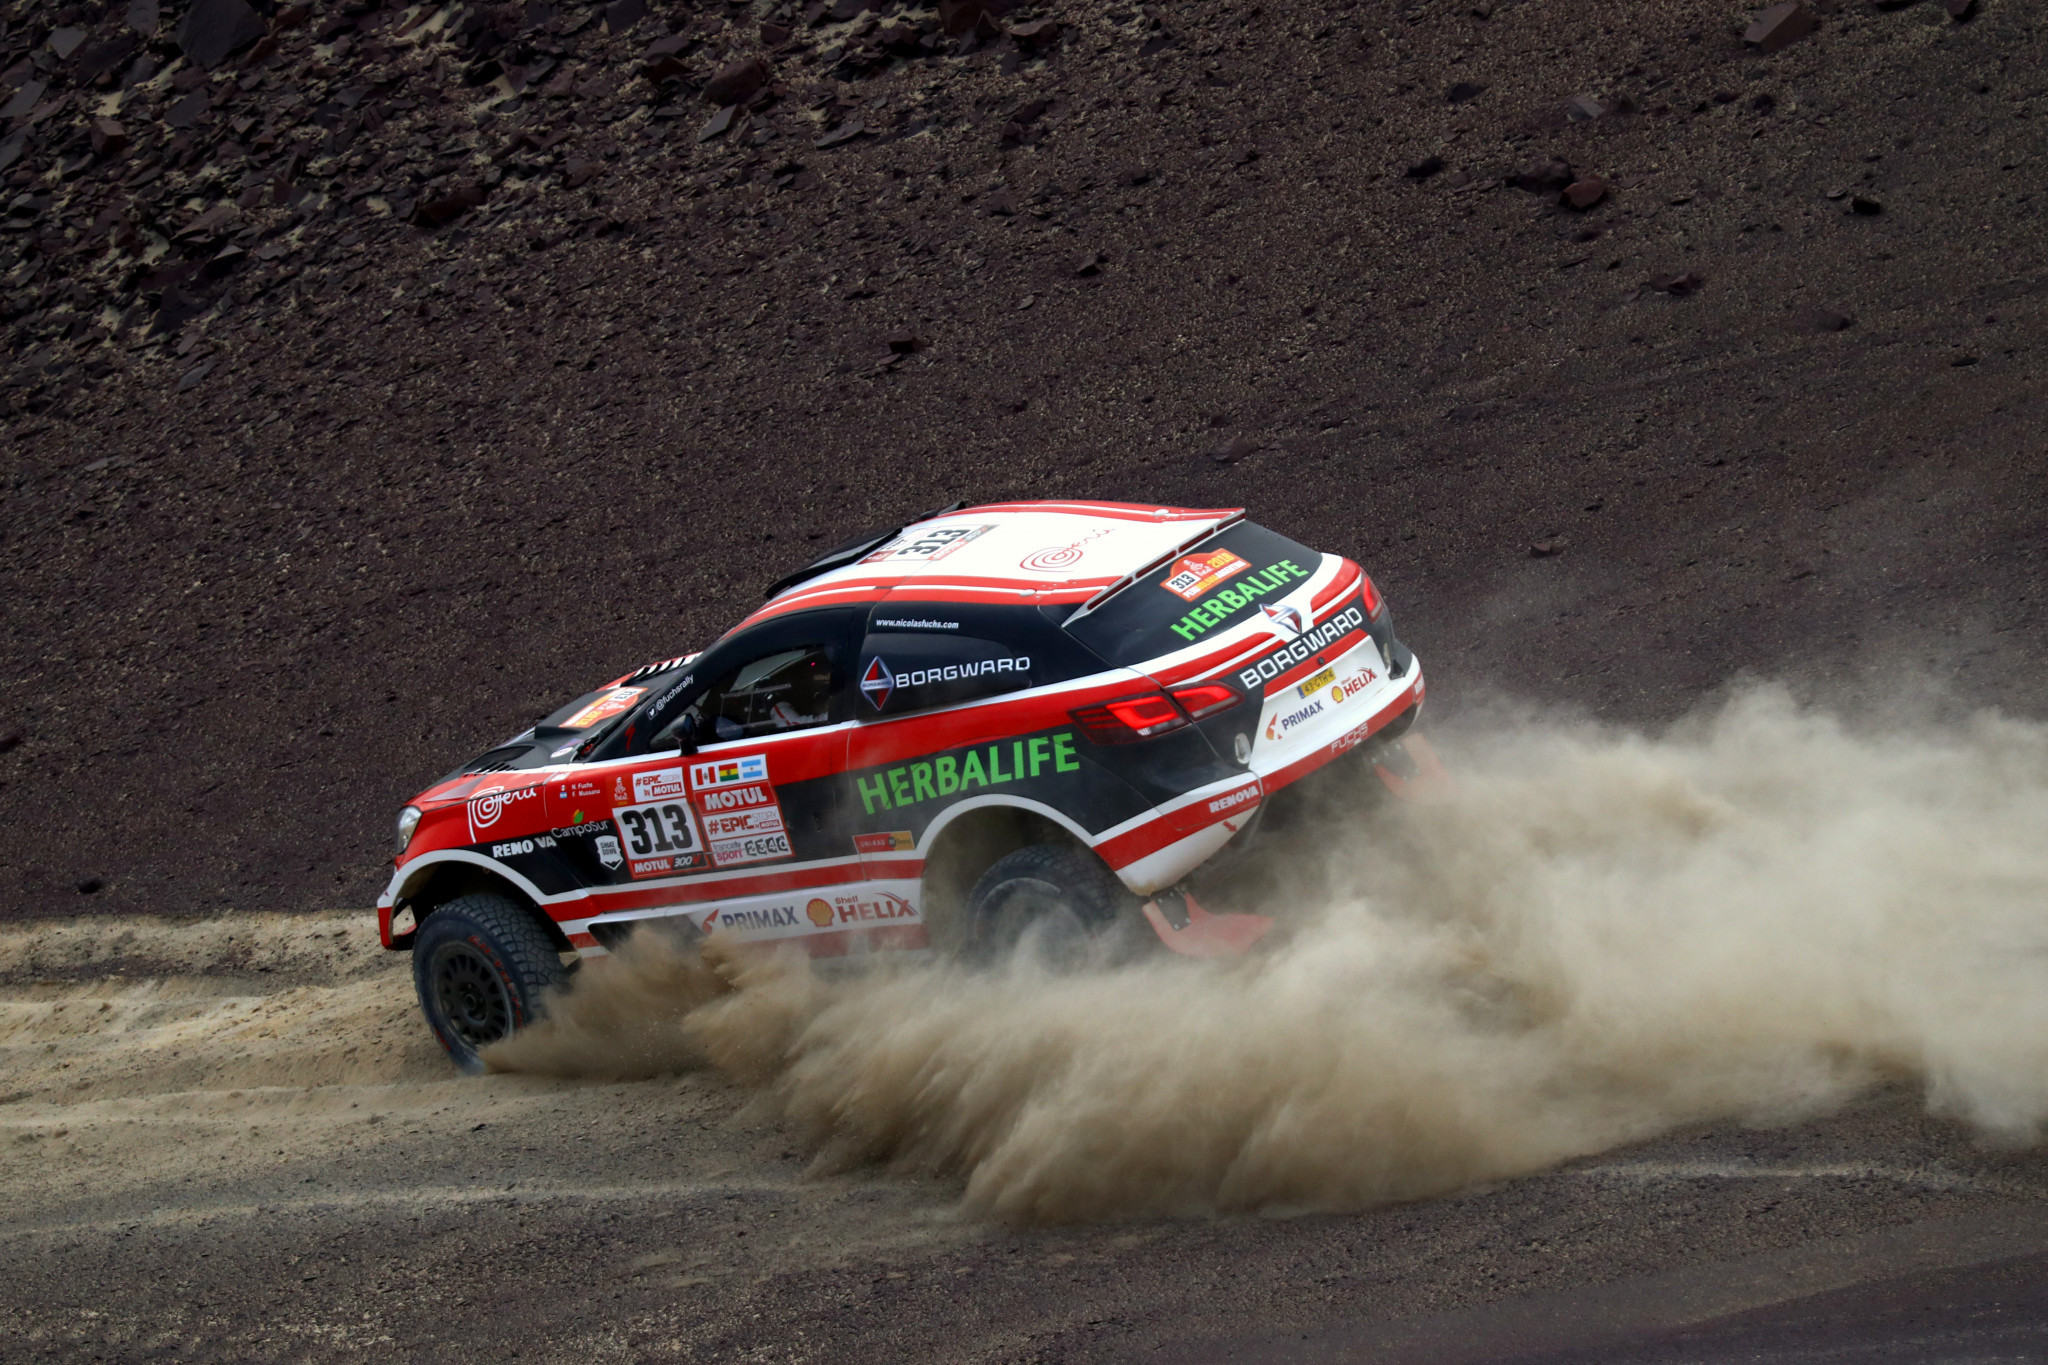 Nicolas Fuchs Sierlecki also took part in the Dakar Rally in 2018 ©Getty Images